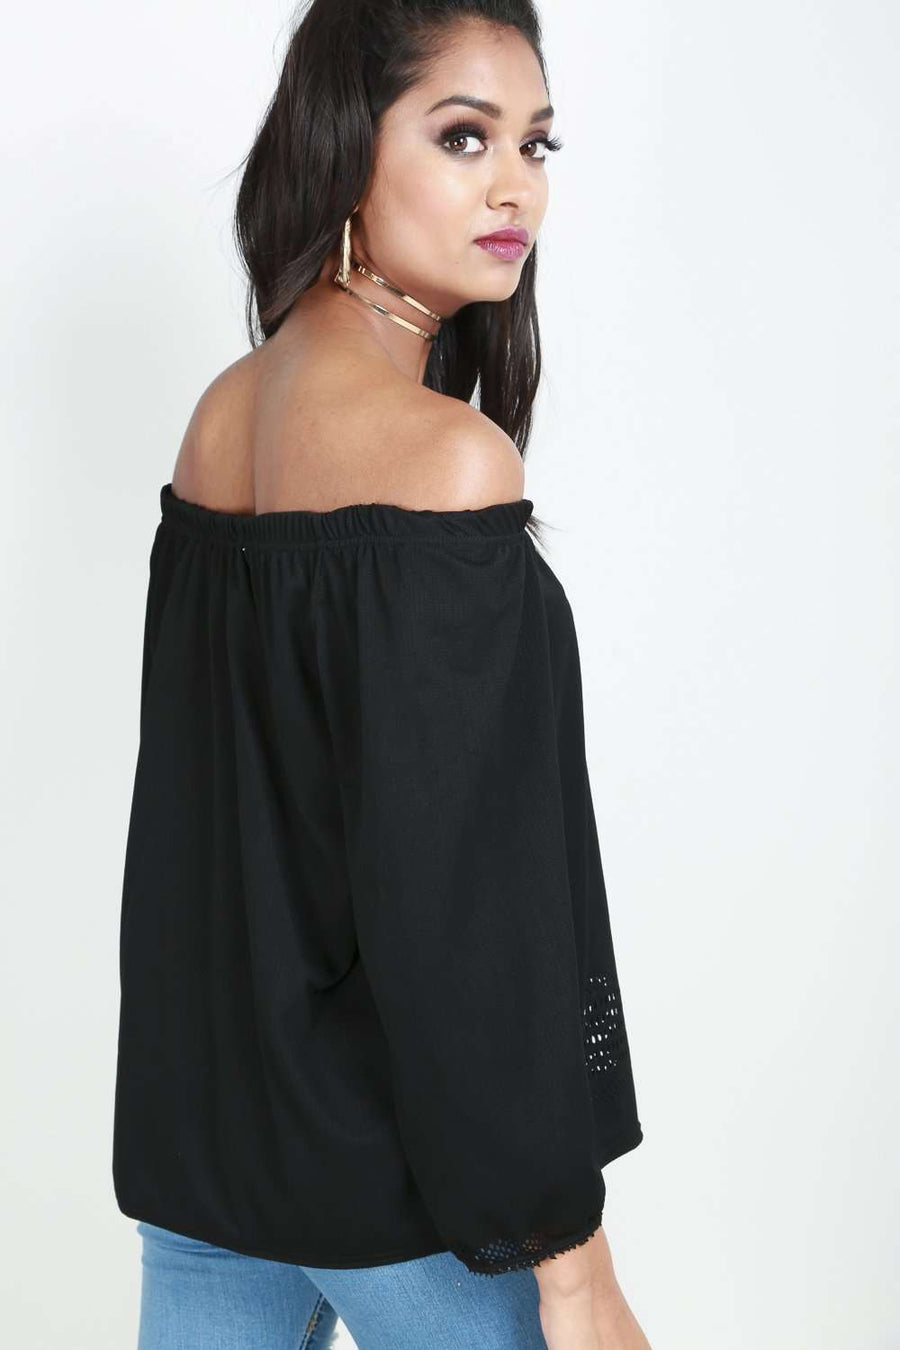 Black Off Shoulder Laser Cut Long Sleeve Top - bejealous-com